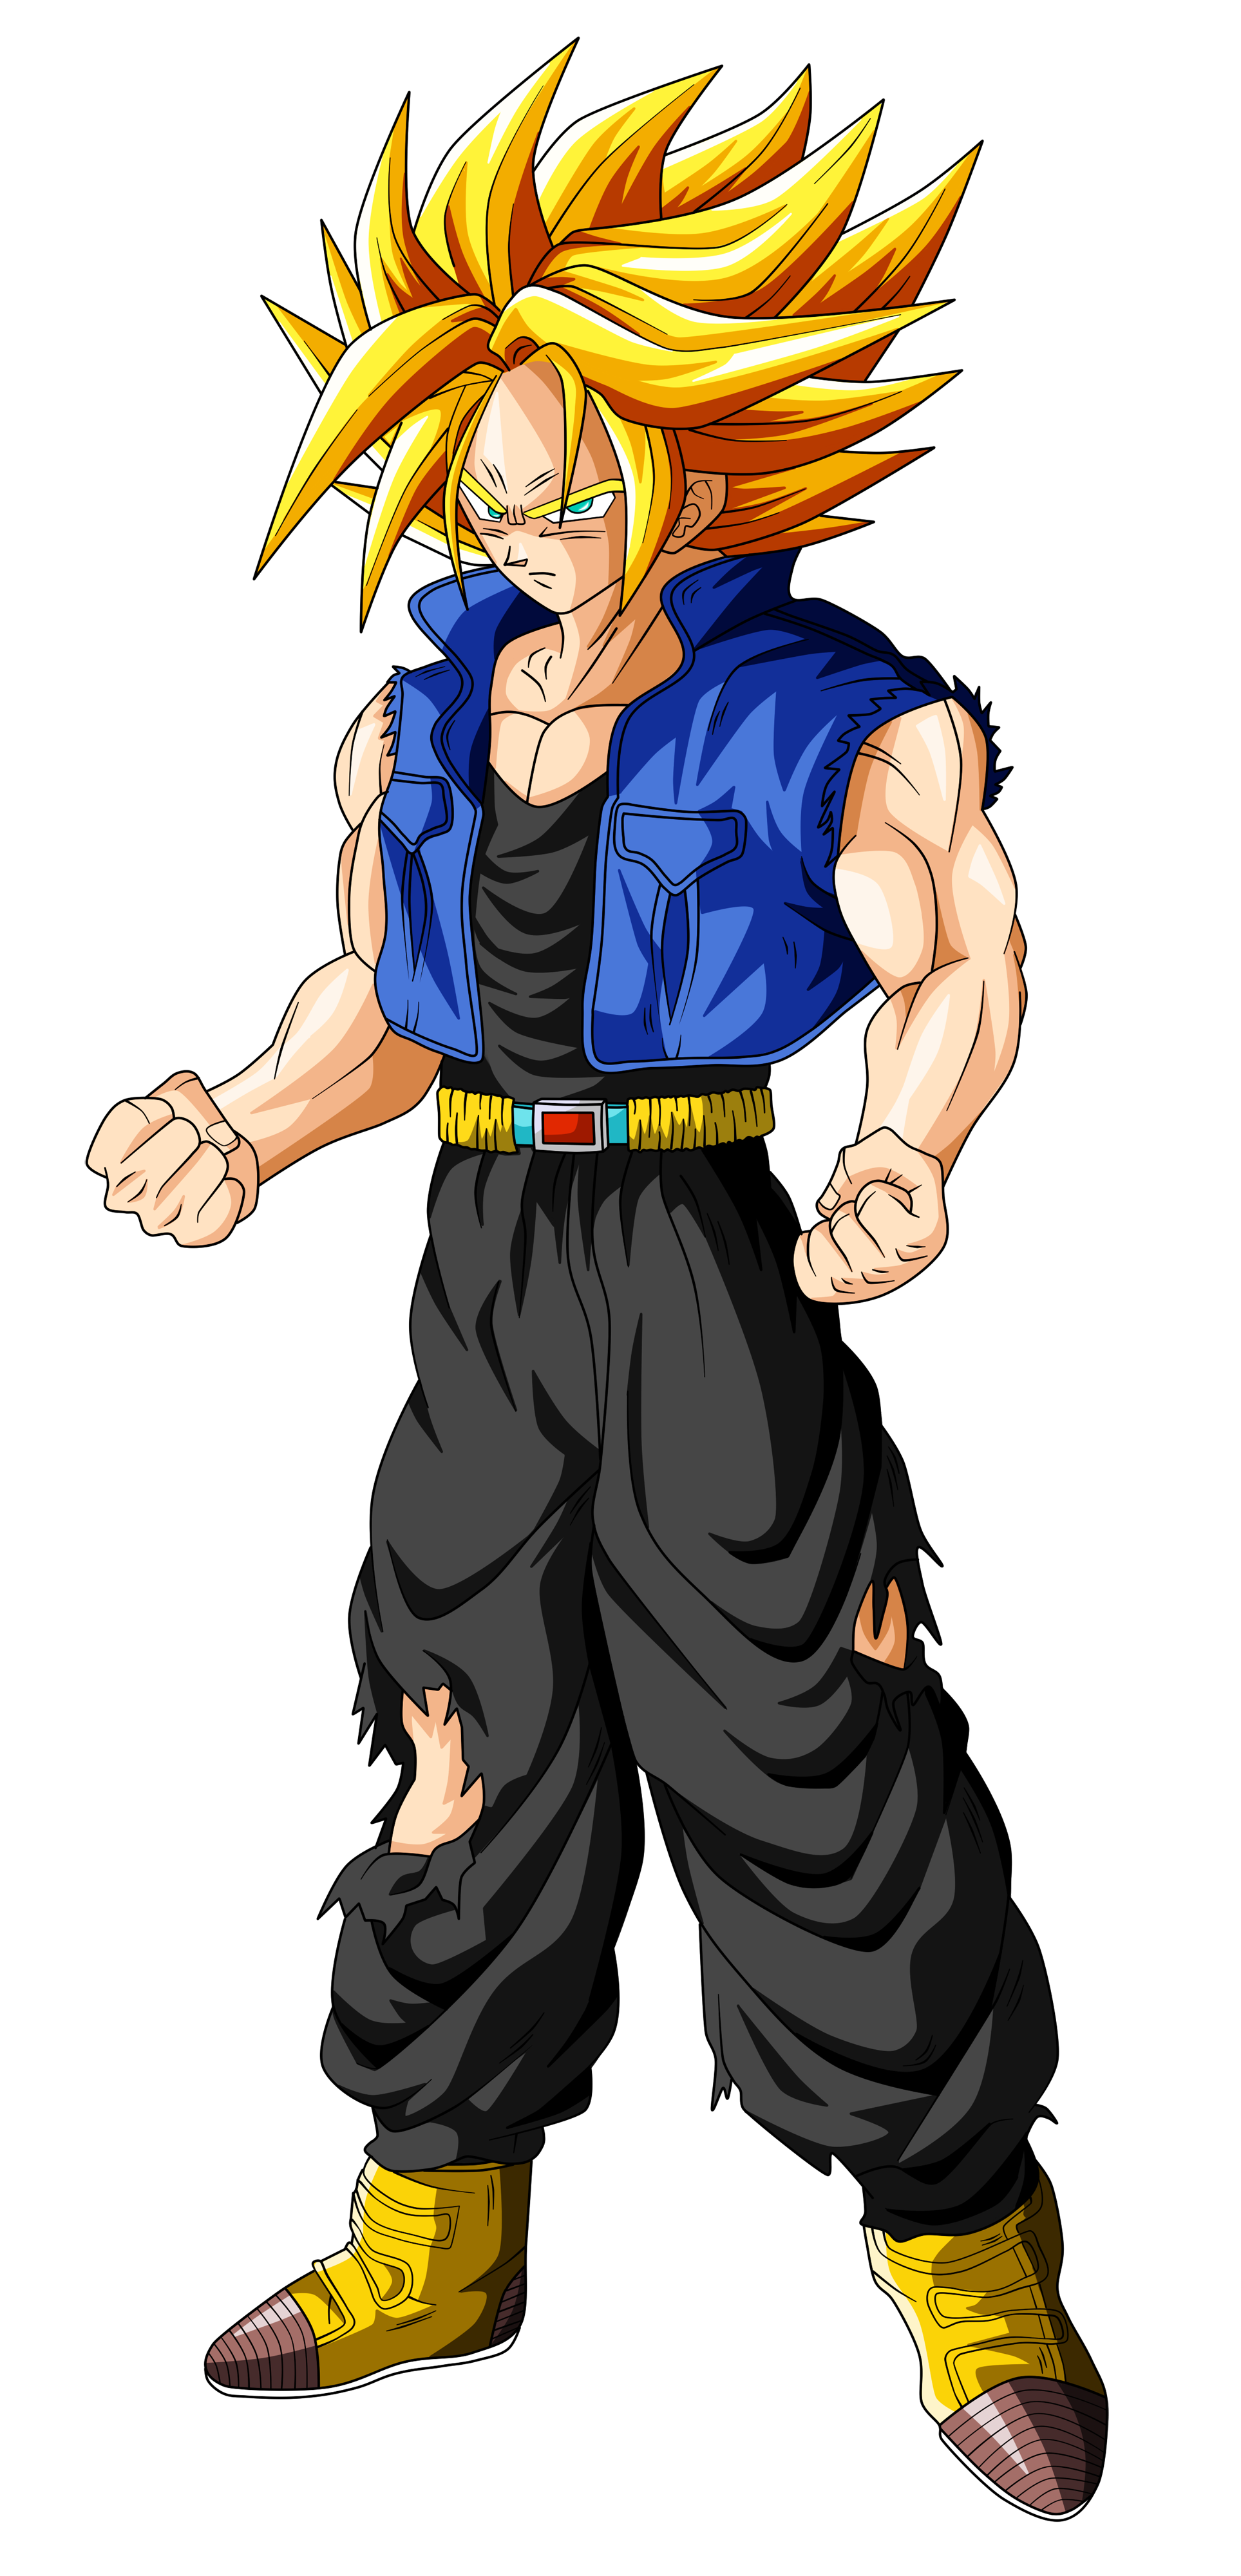 trunks super saiyan ascended by originalsupersaiyan deviantart com